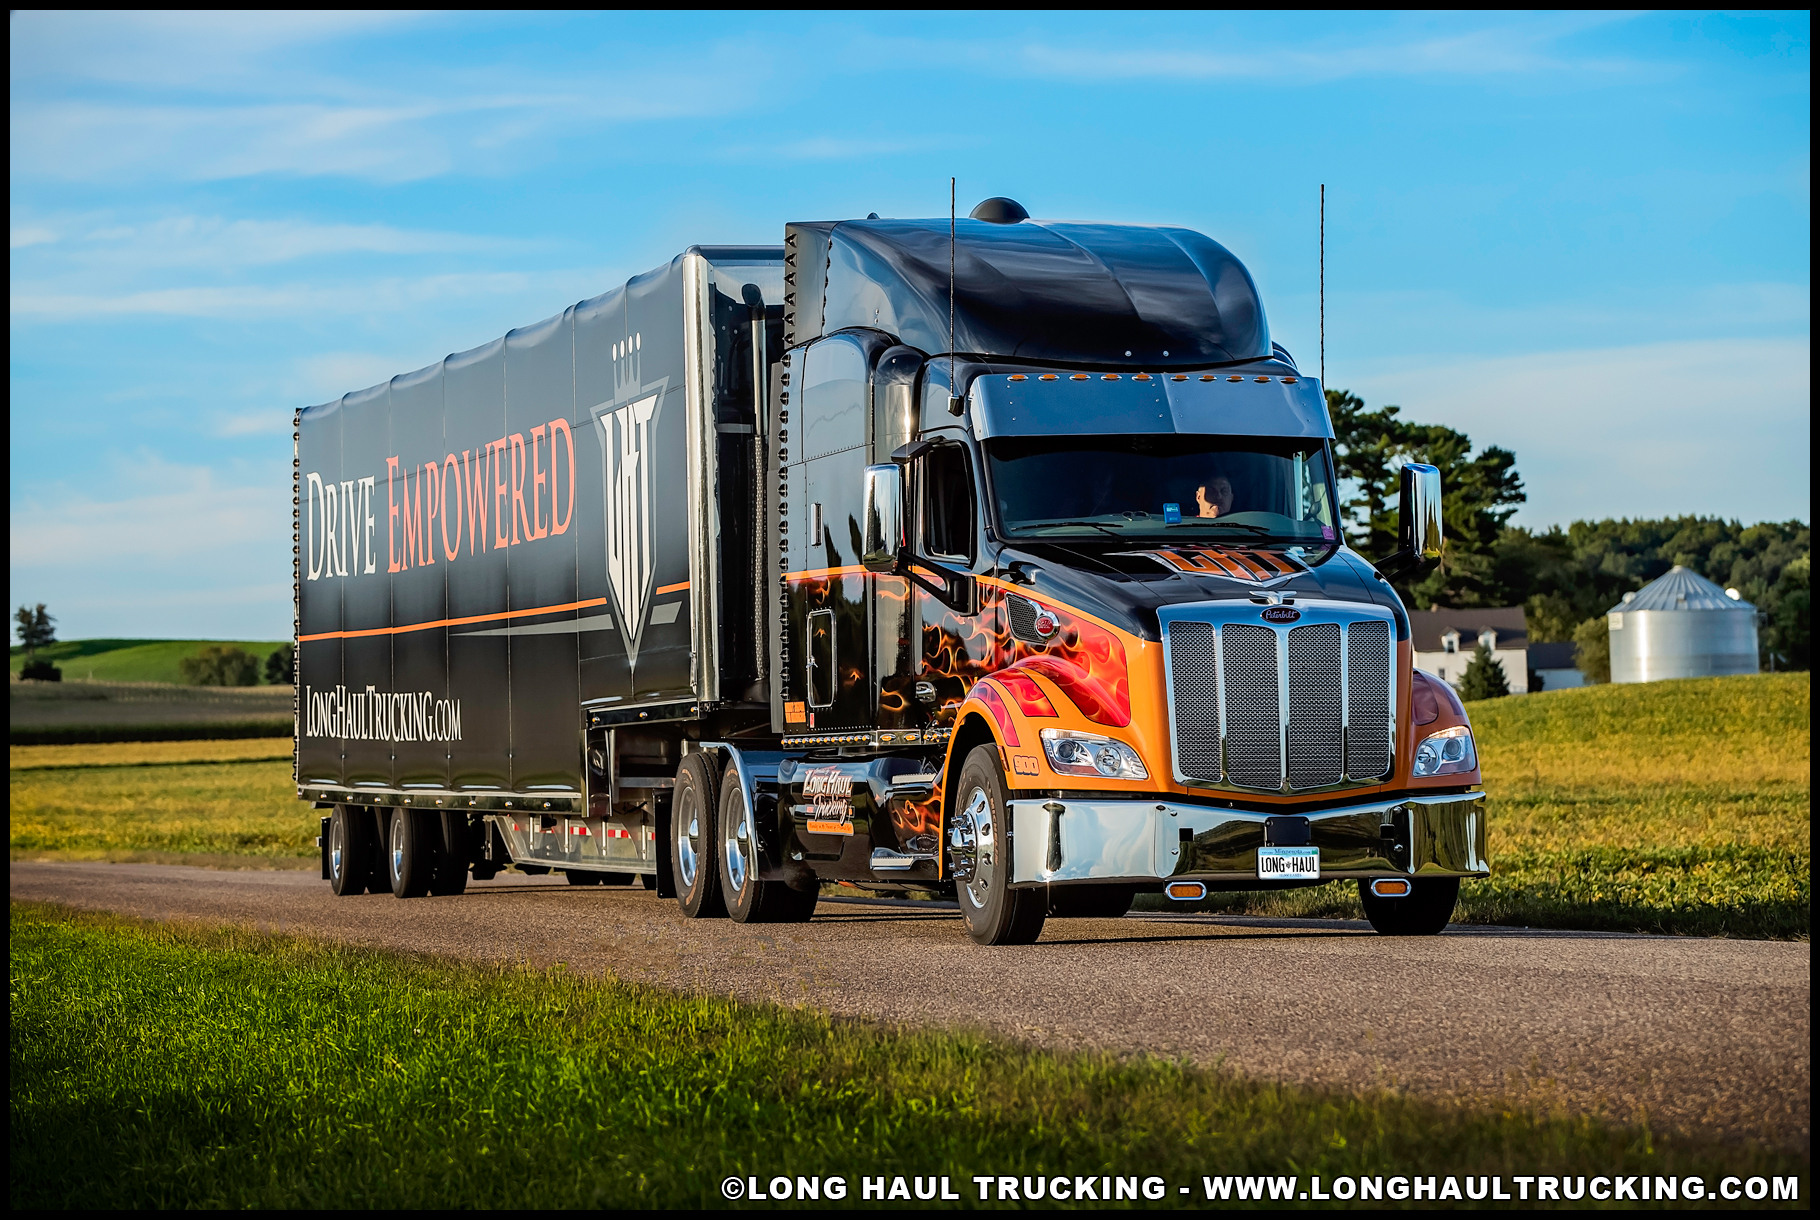 Long Haul Trucking >> Duncanputman Com Industry Spotlight Interview With Anthony Book Of